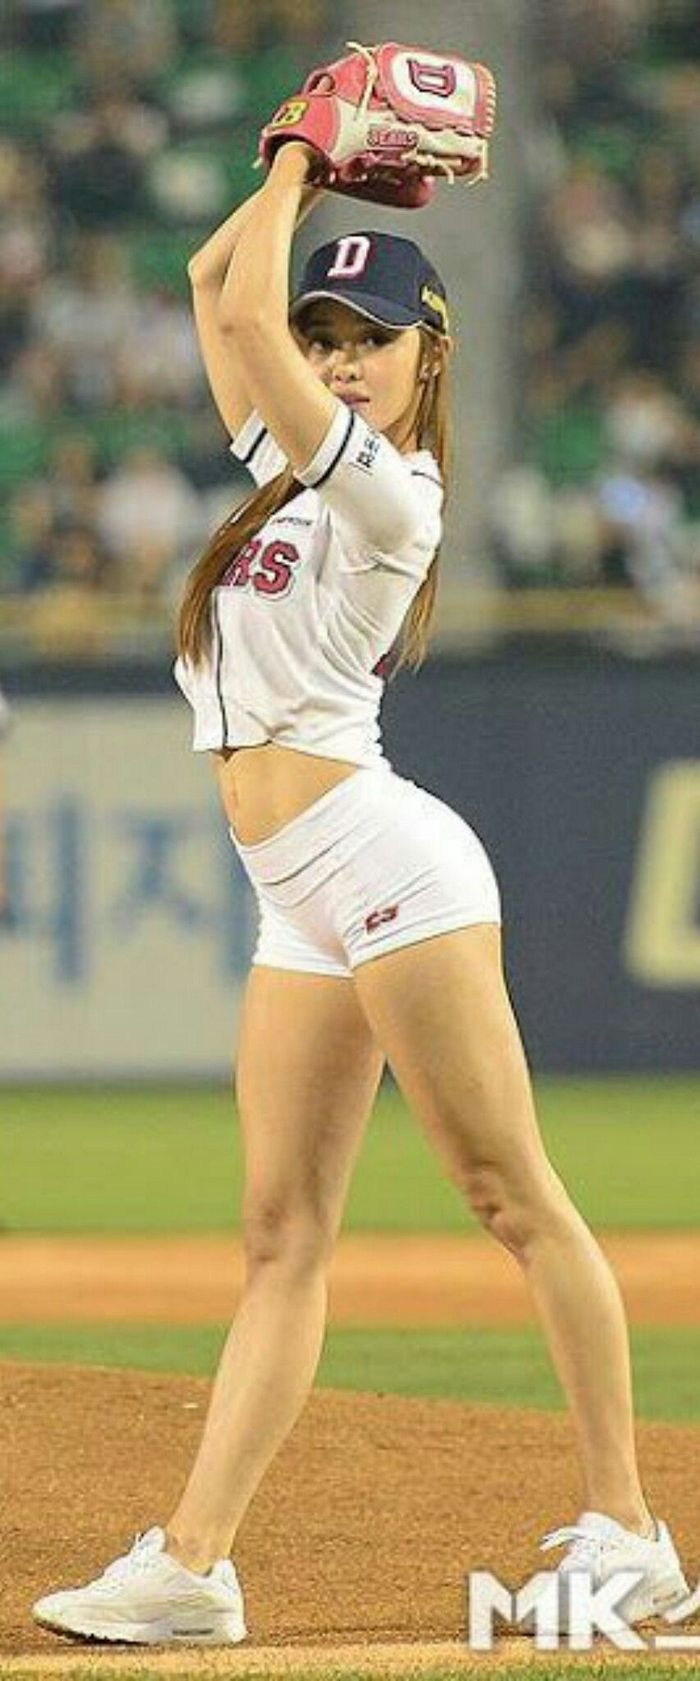 ridiculous-baseball-and-softball-bloopers-and-fails-20-pictures-09